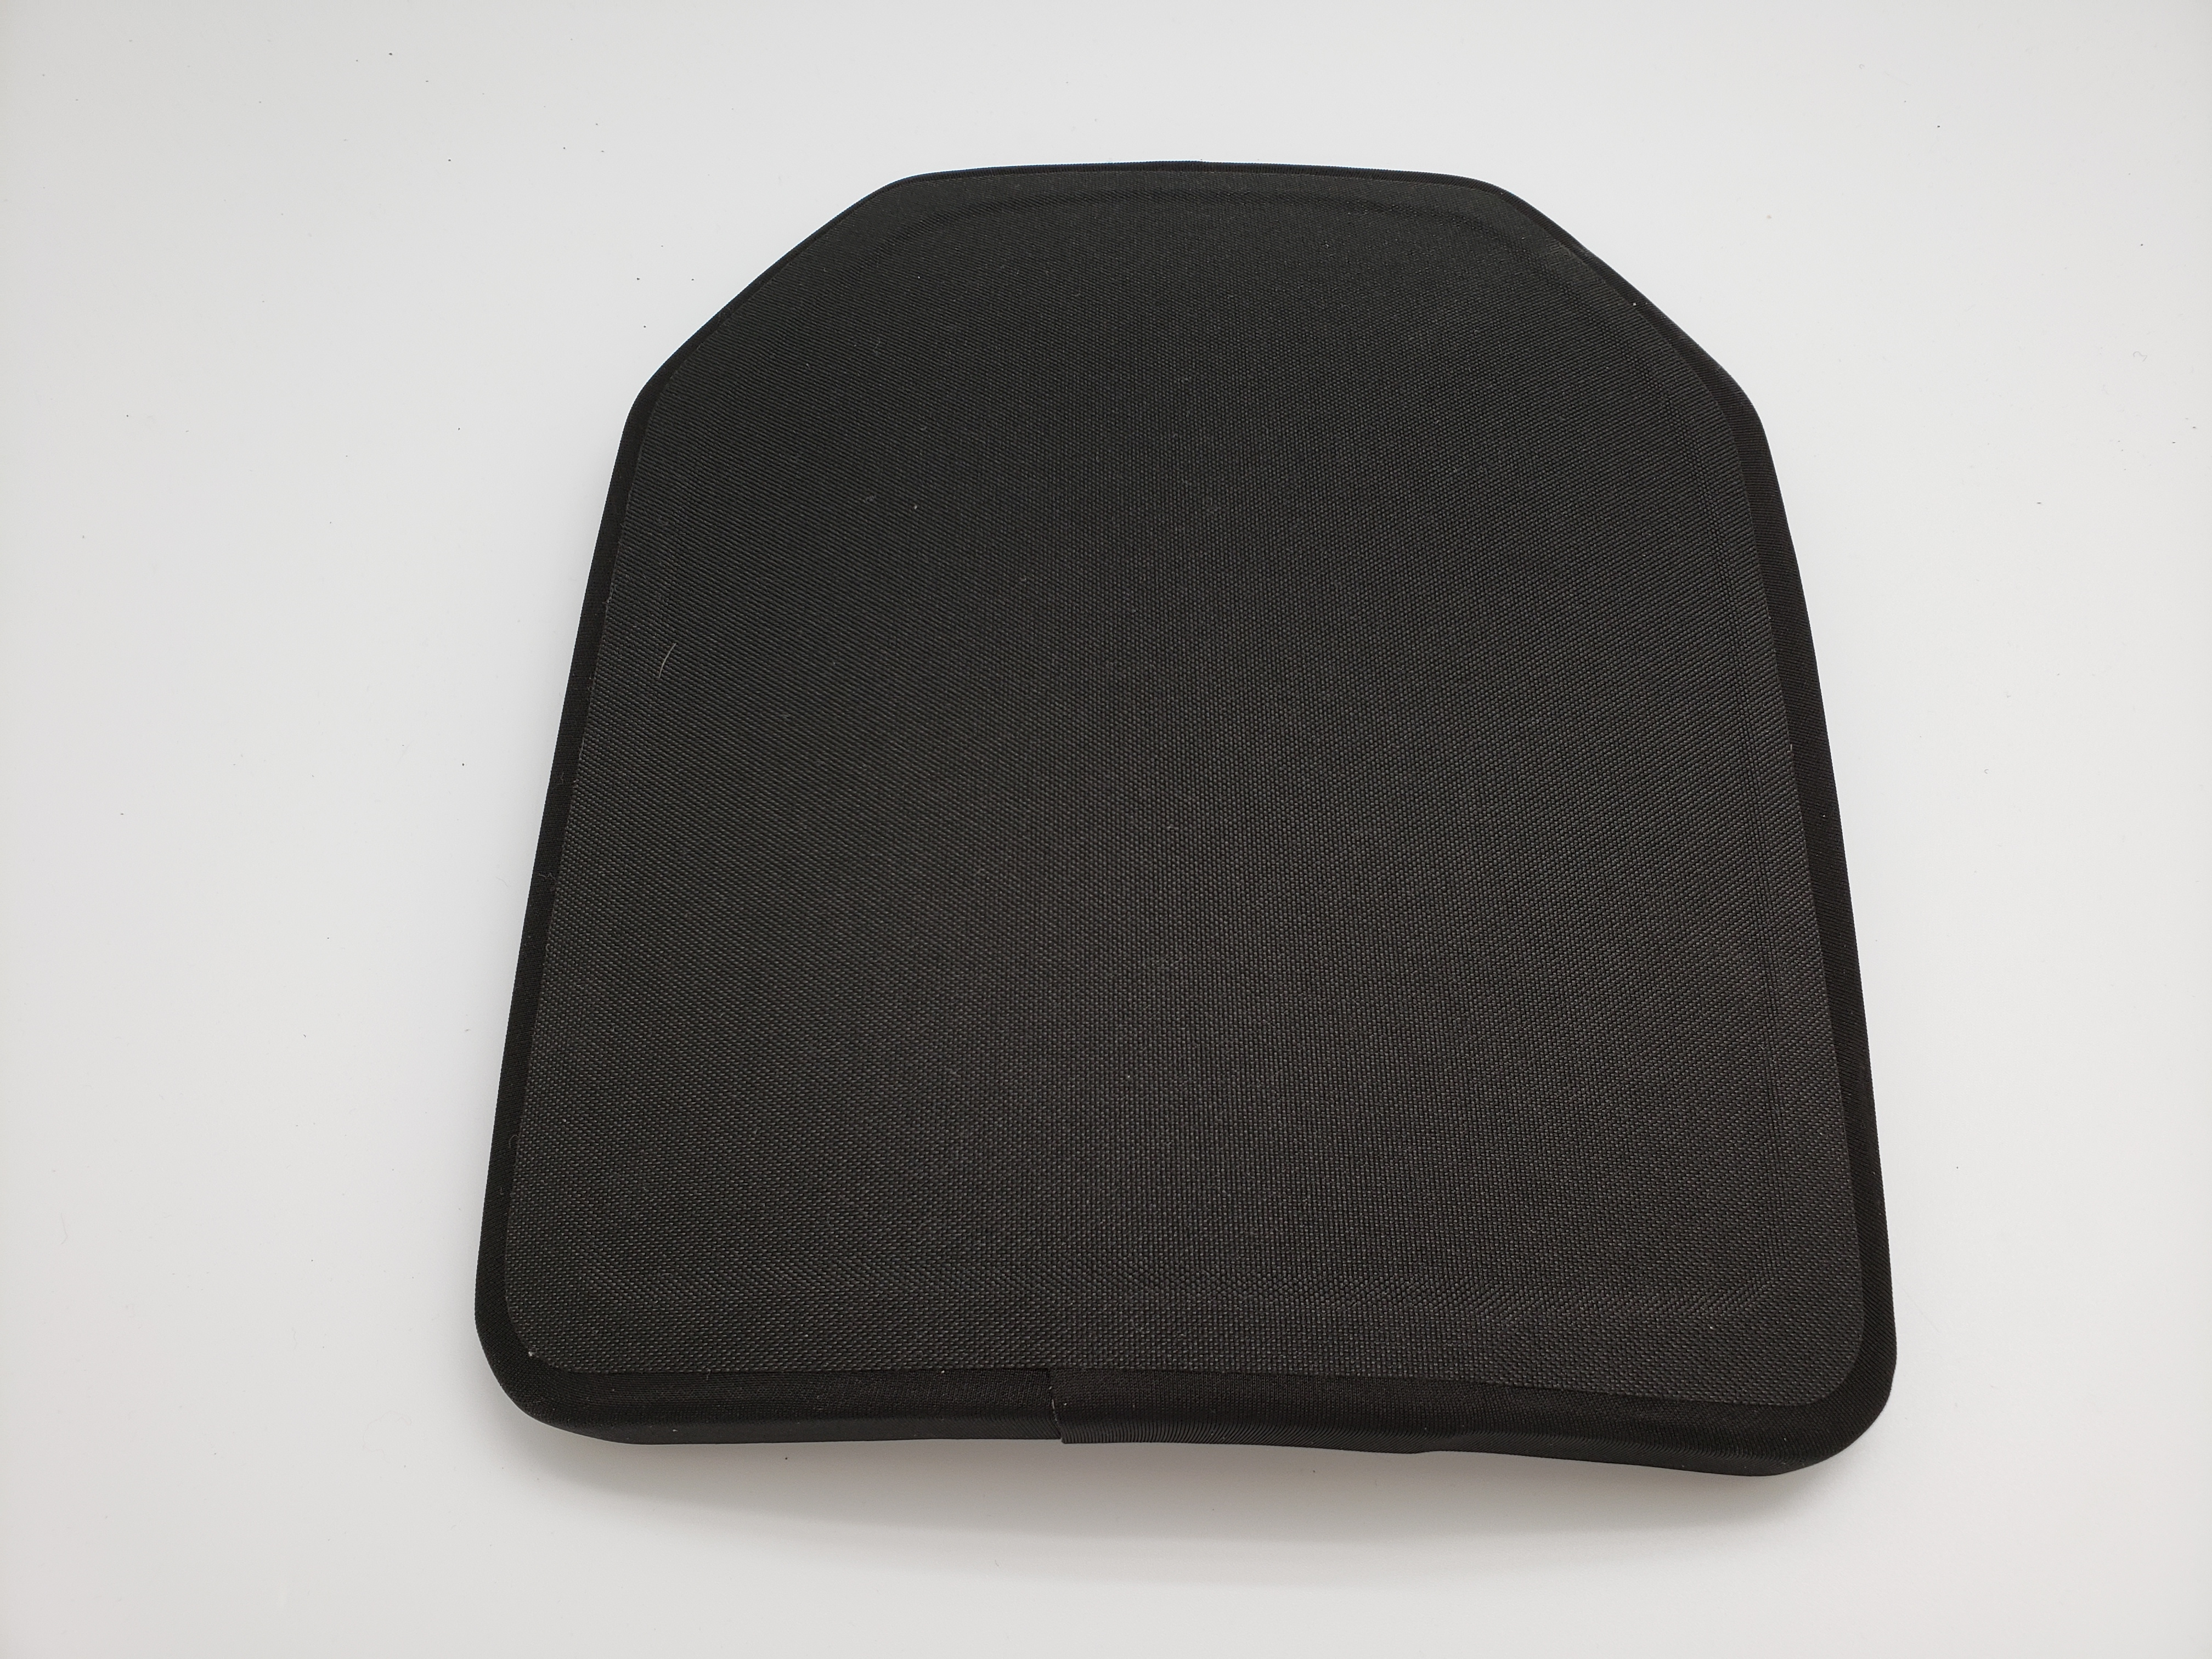 LEVEL 3A PE ICW BALLISTIC PLATE 3.7 POUNDS 11x14 CURVED